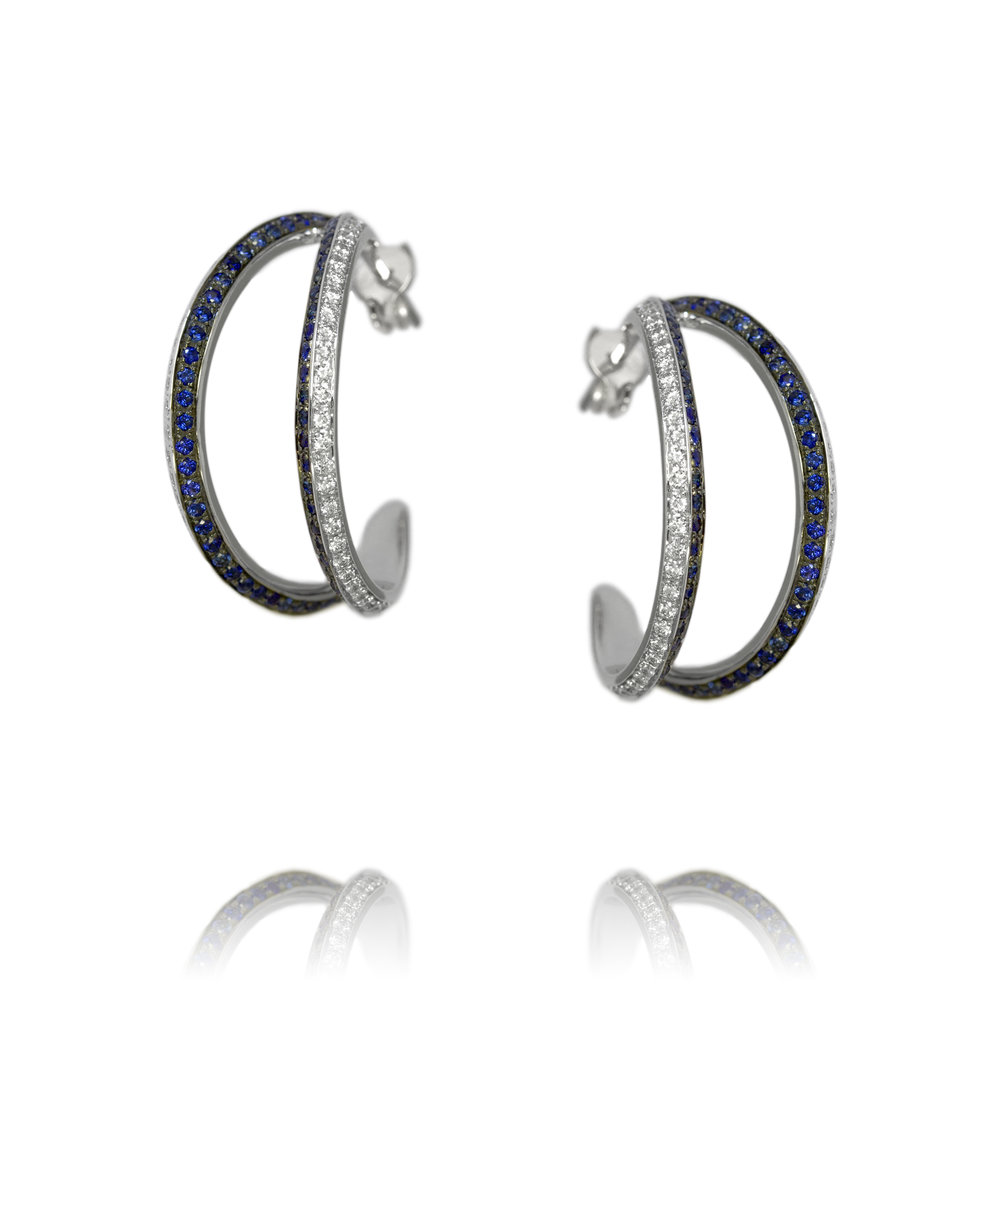 Earrings  18KT White Gold, Diamonds, Sapphires  REF. MOQ145